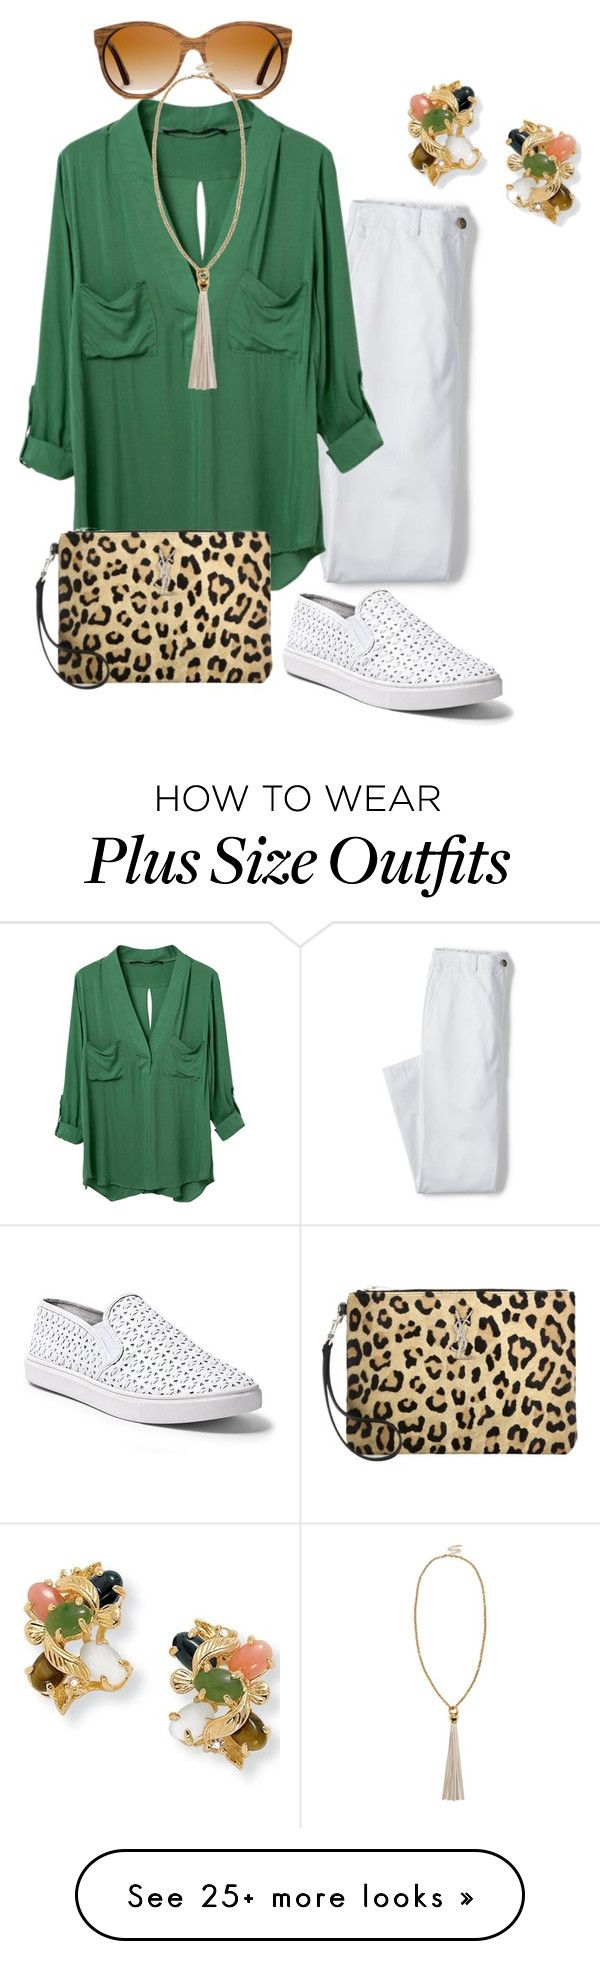 """plus size vacay casual"" by kristie-payne on Polyvore featuring Palm Beach Jewelry, Lands' End, WithChic, Steve Madden, Shwood, Sole Society and Yves Saint Laurent"